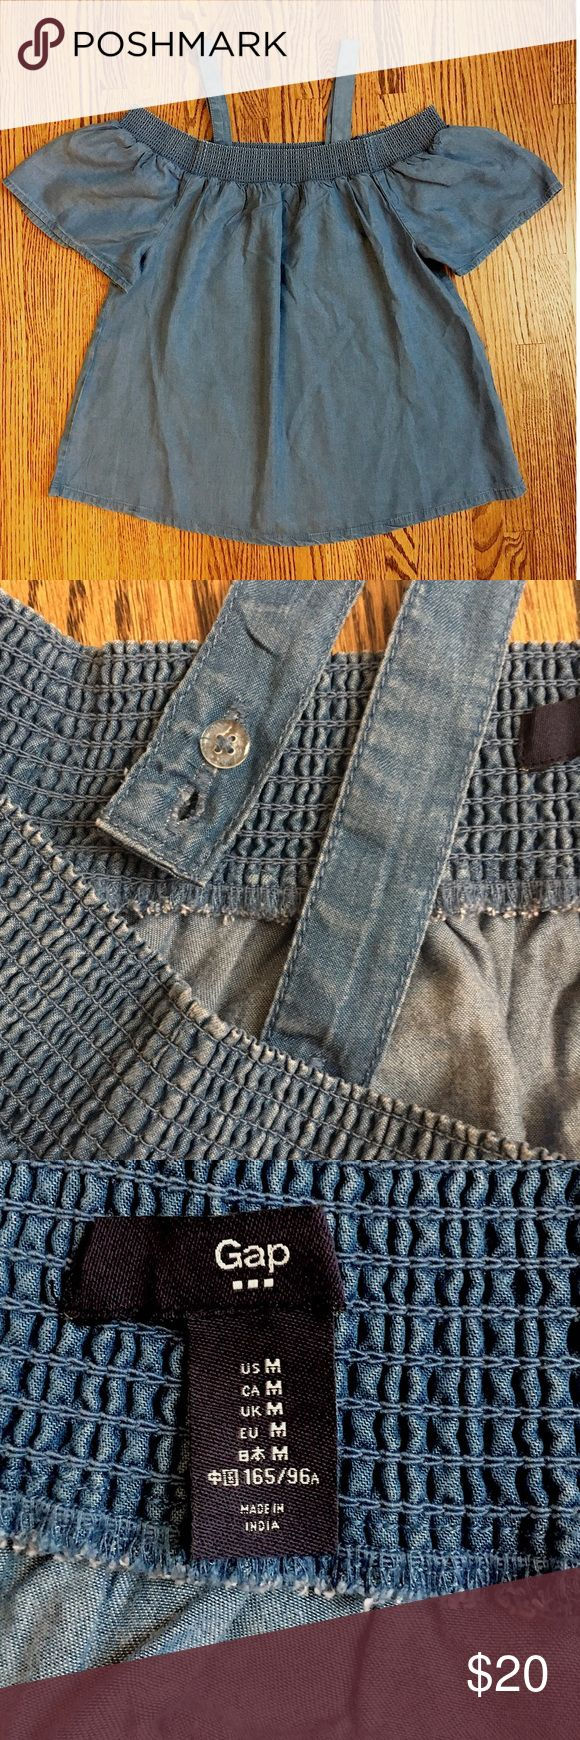 GAP Ladies Denim Blouse Super cute, light-weight denim top worn only once. Straps can be removed. Perfect to pair with white denim jeans or shorts. A very versatile staple to any spring/summer wardrobe! GAP Tops Blouses